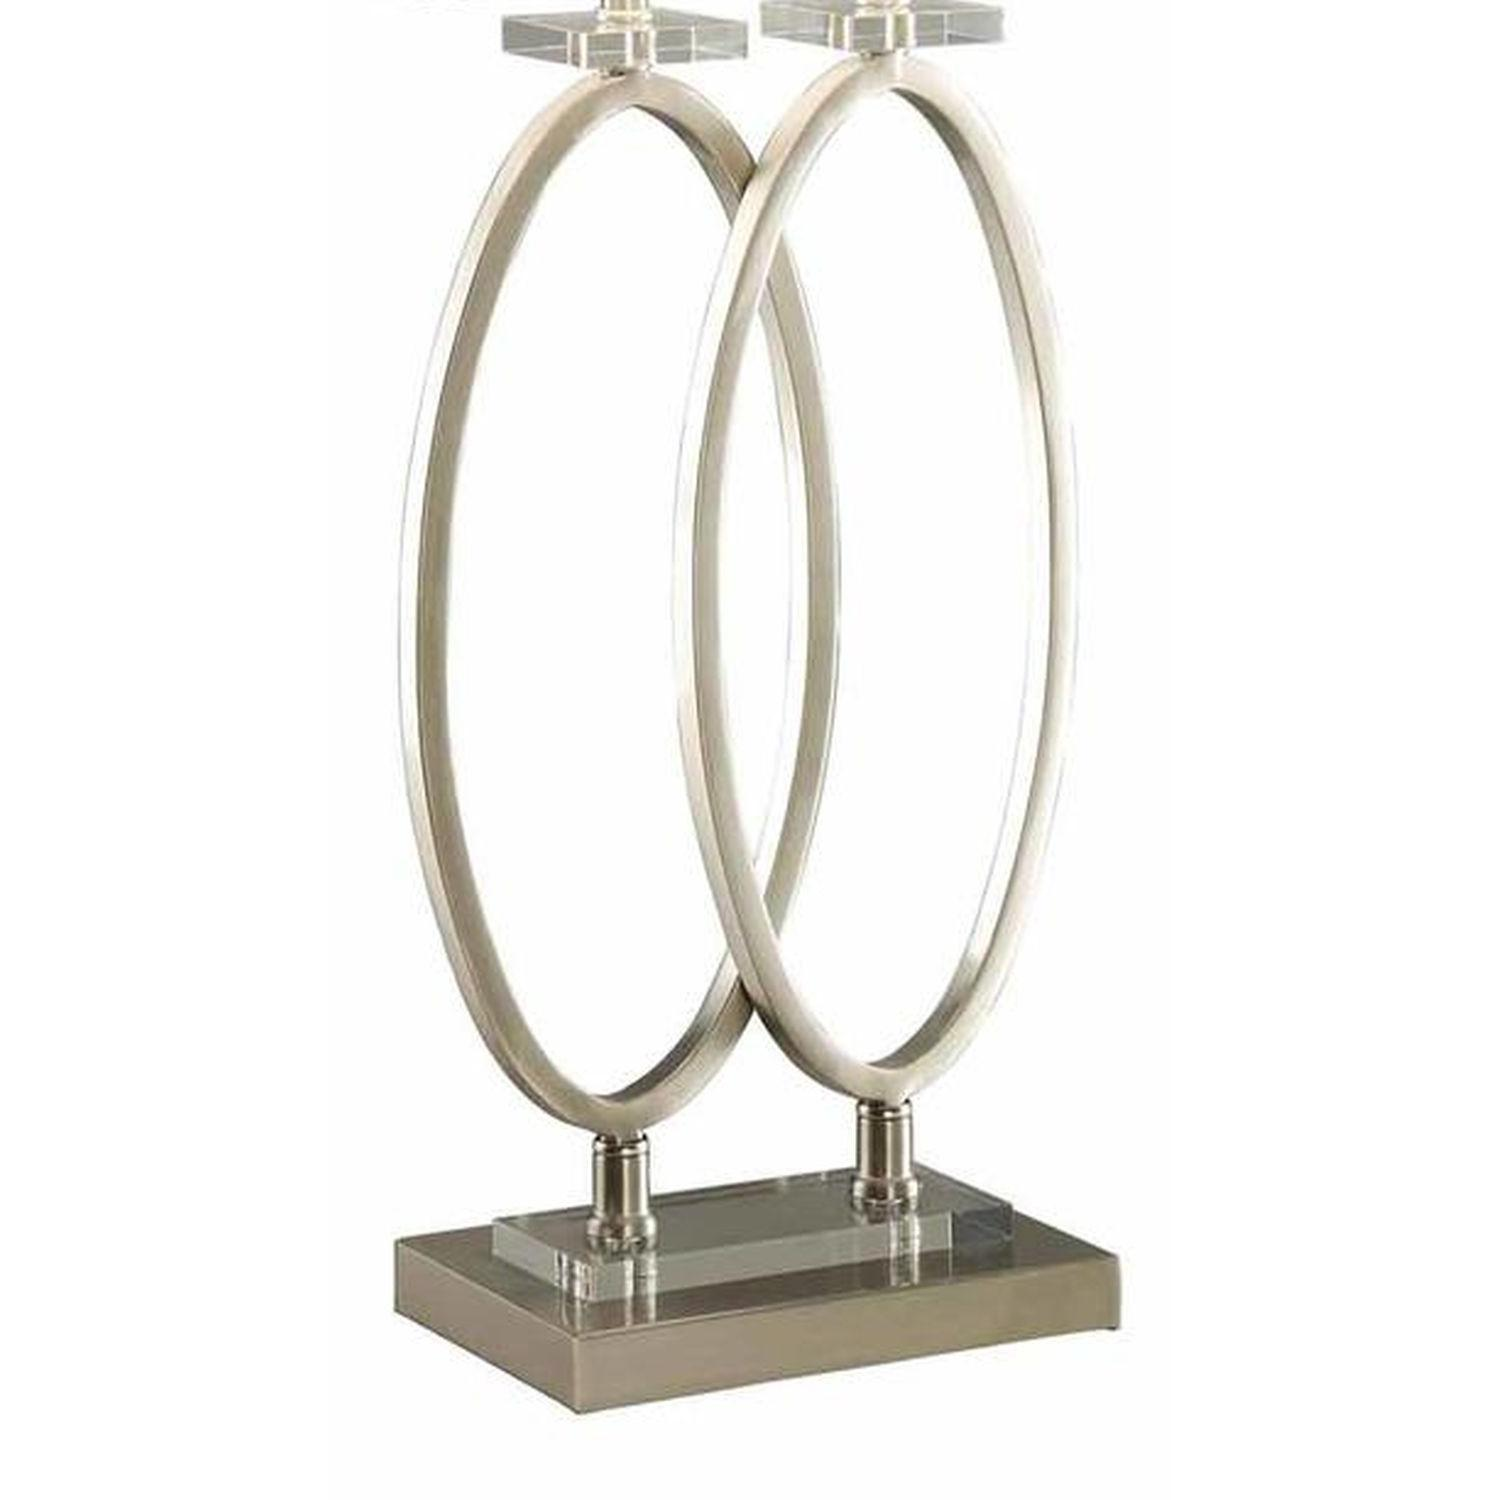 Modern Table Lamp w/ Twin Standing Rings on Rectangle Base - image-2